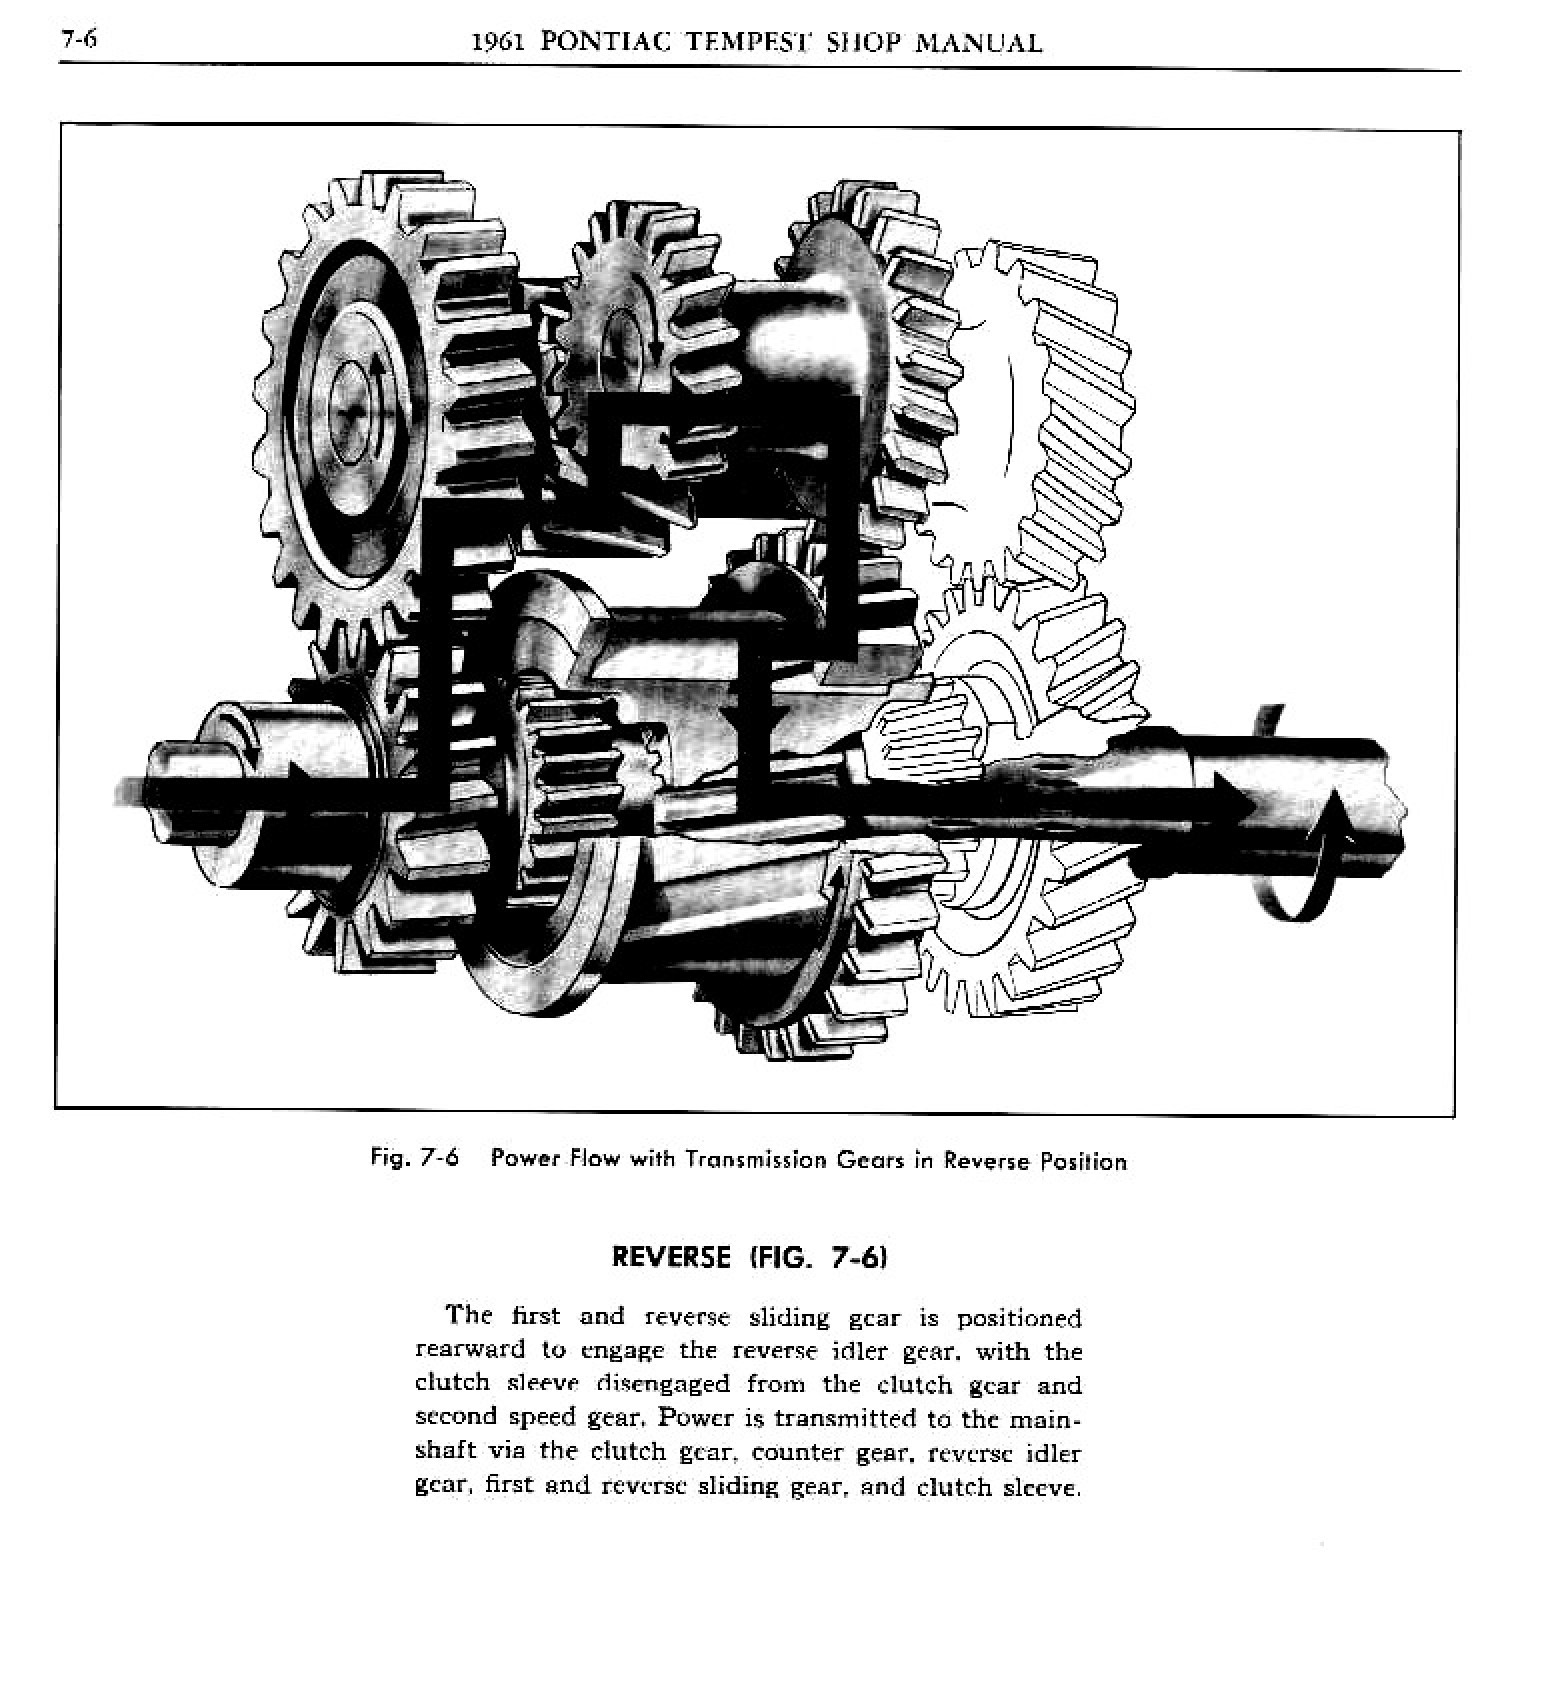 1961 Pontiac Tempest Shop Manual- Synchro-Mesh